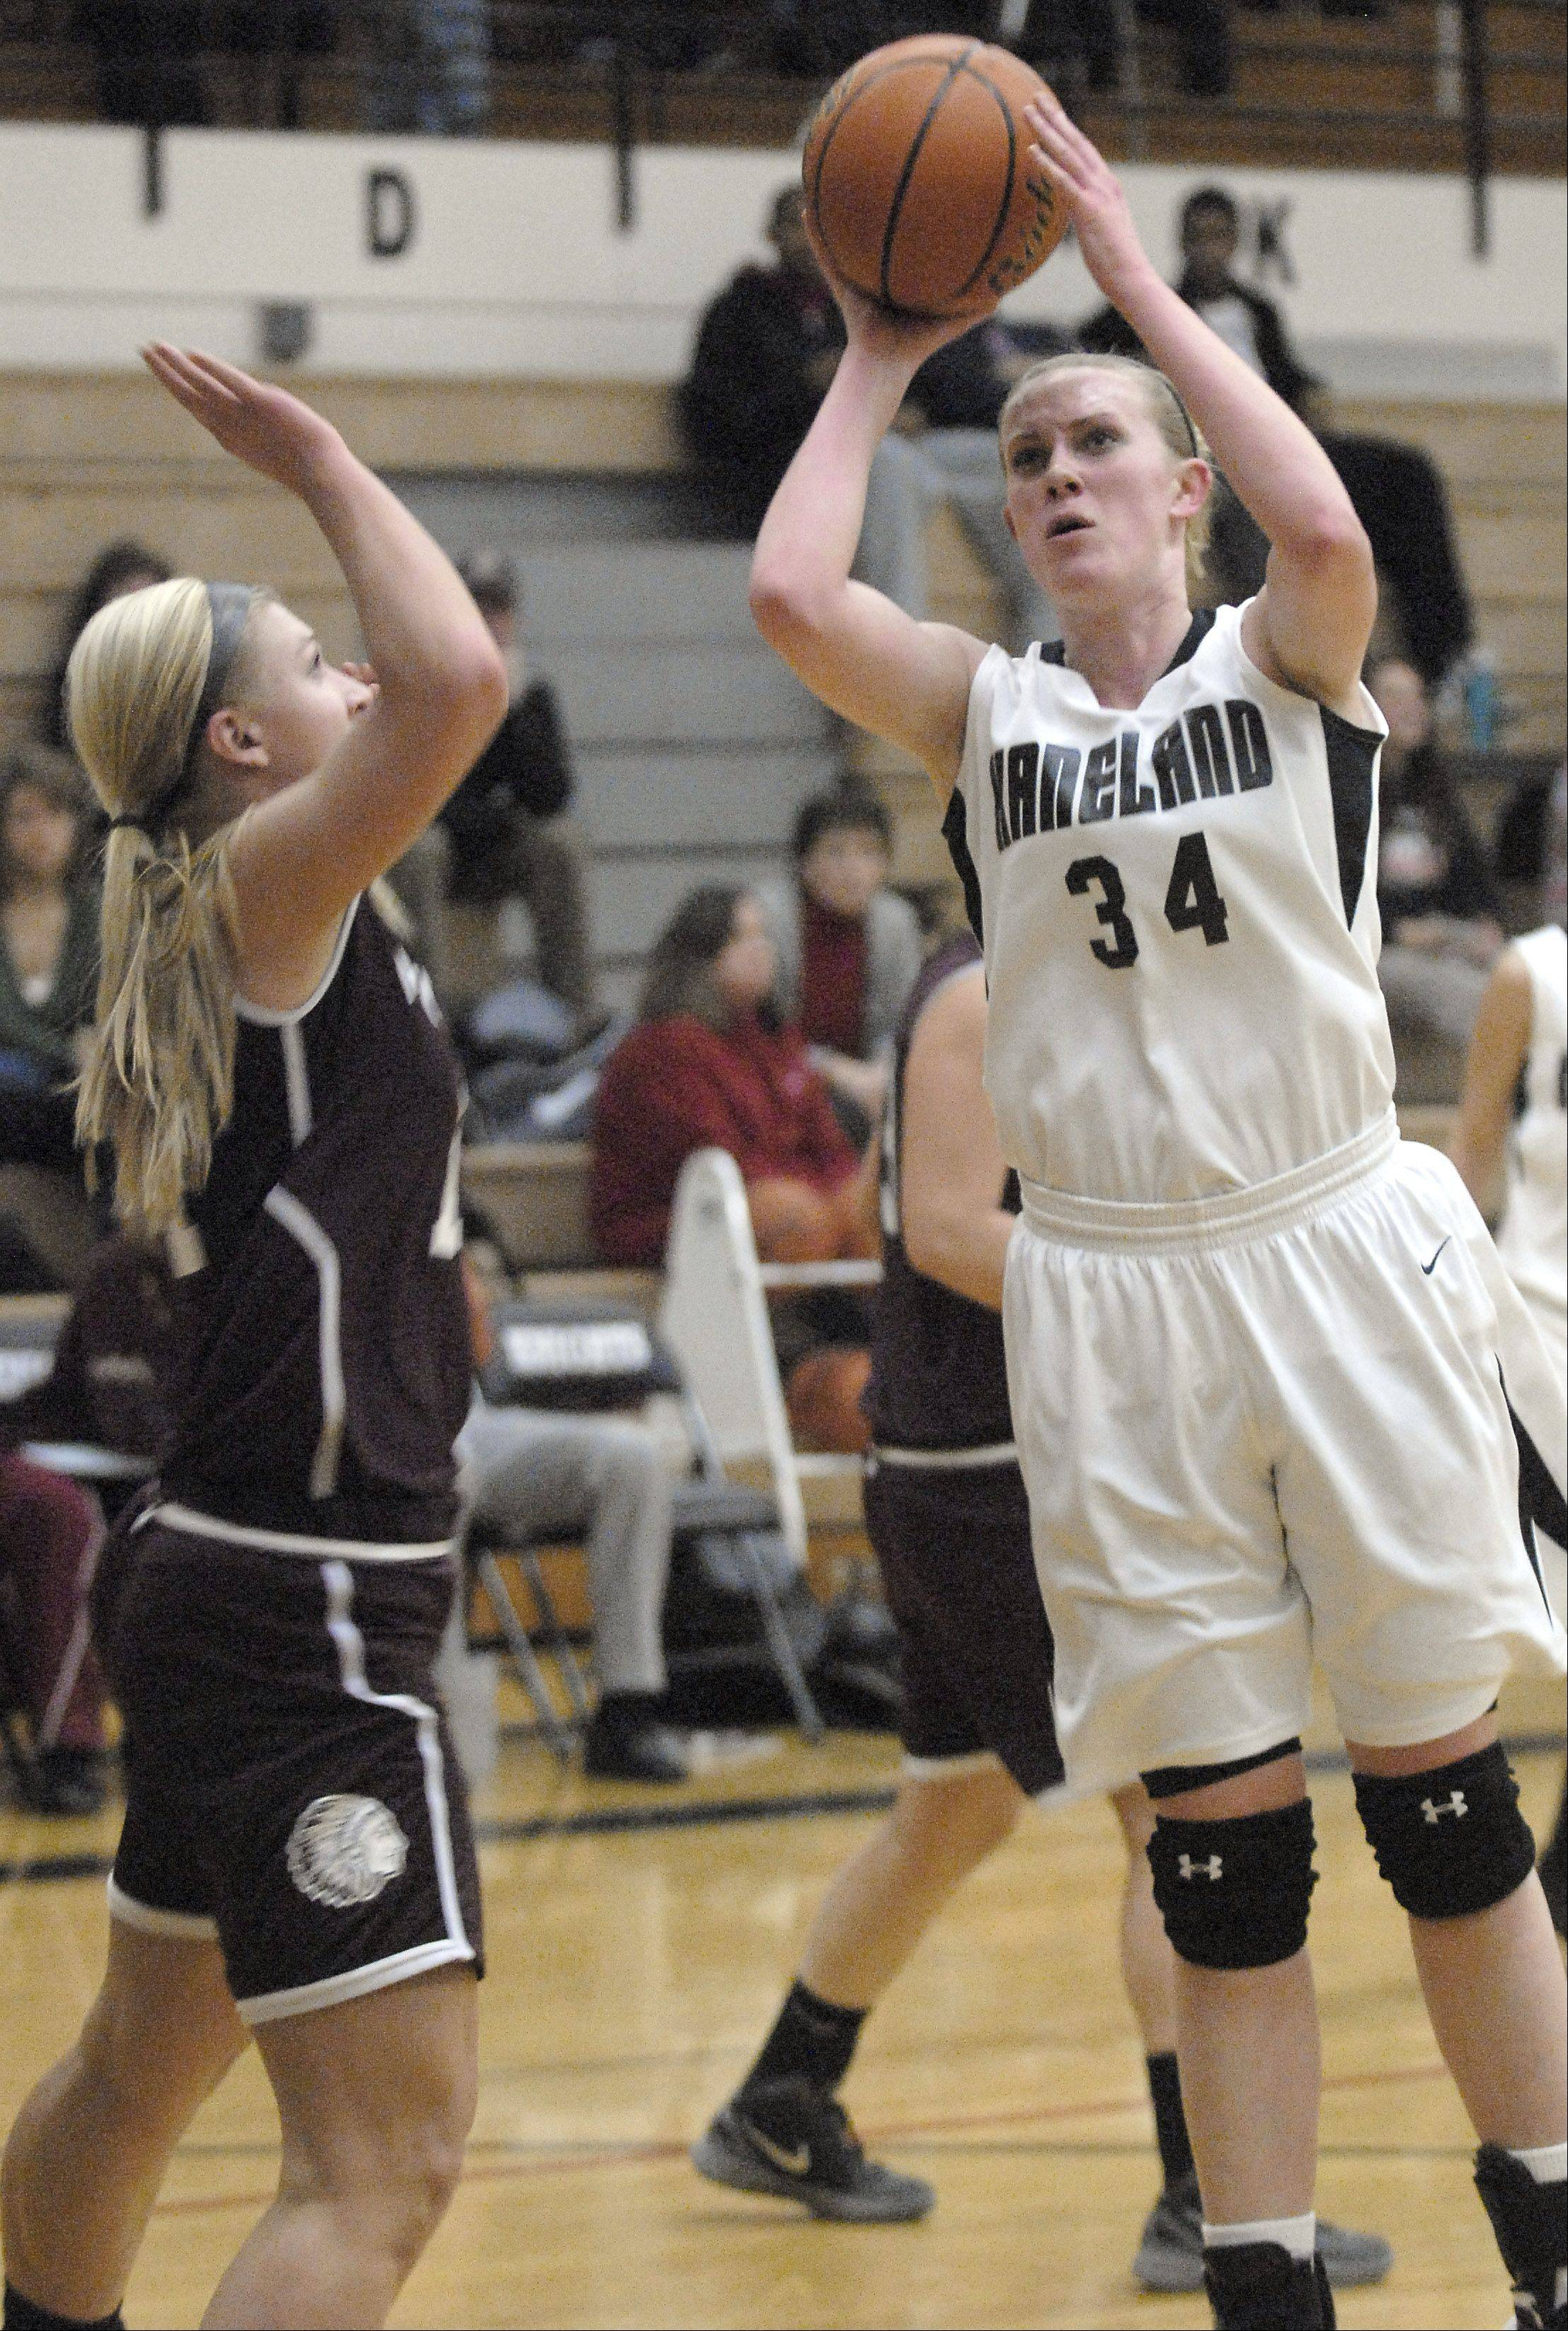 Marengo's Allison Rogutich attempts to block a shot by Kaneland's Kelly Evers in the first quarter on Tuesday, February 7.